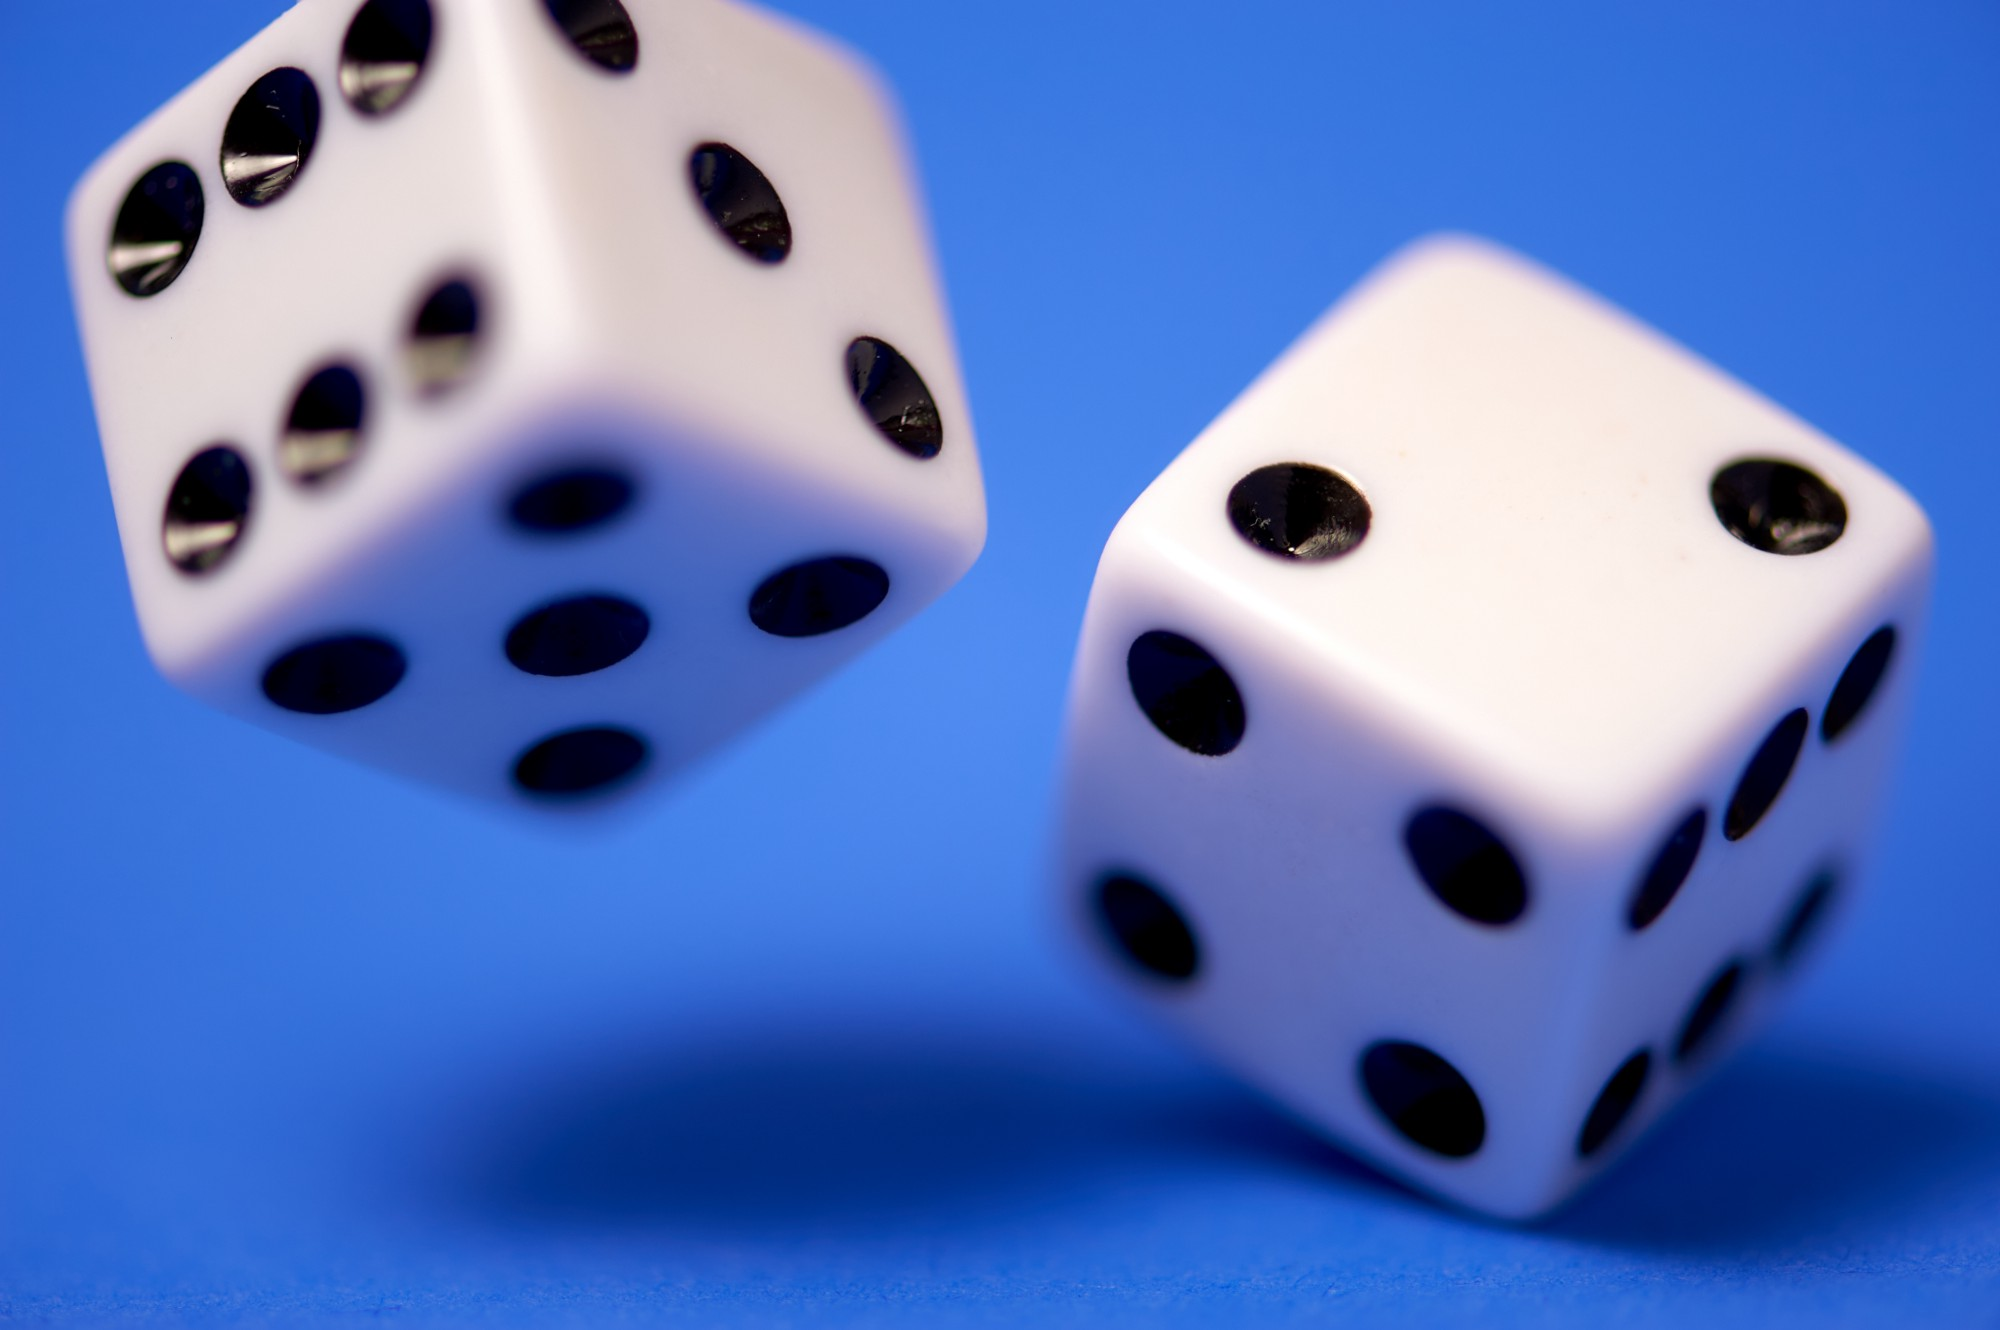 Two dice rolling on a blue table